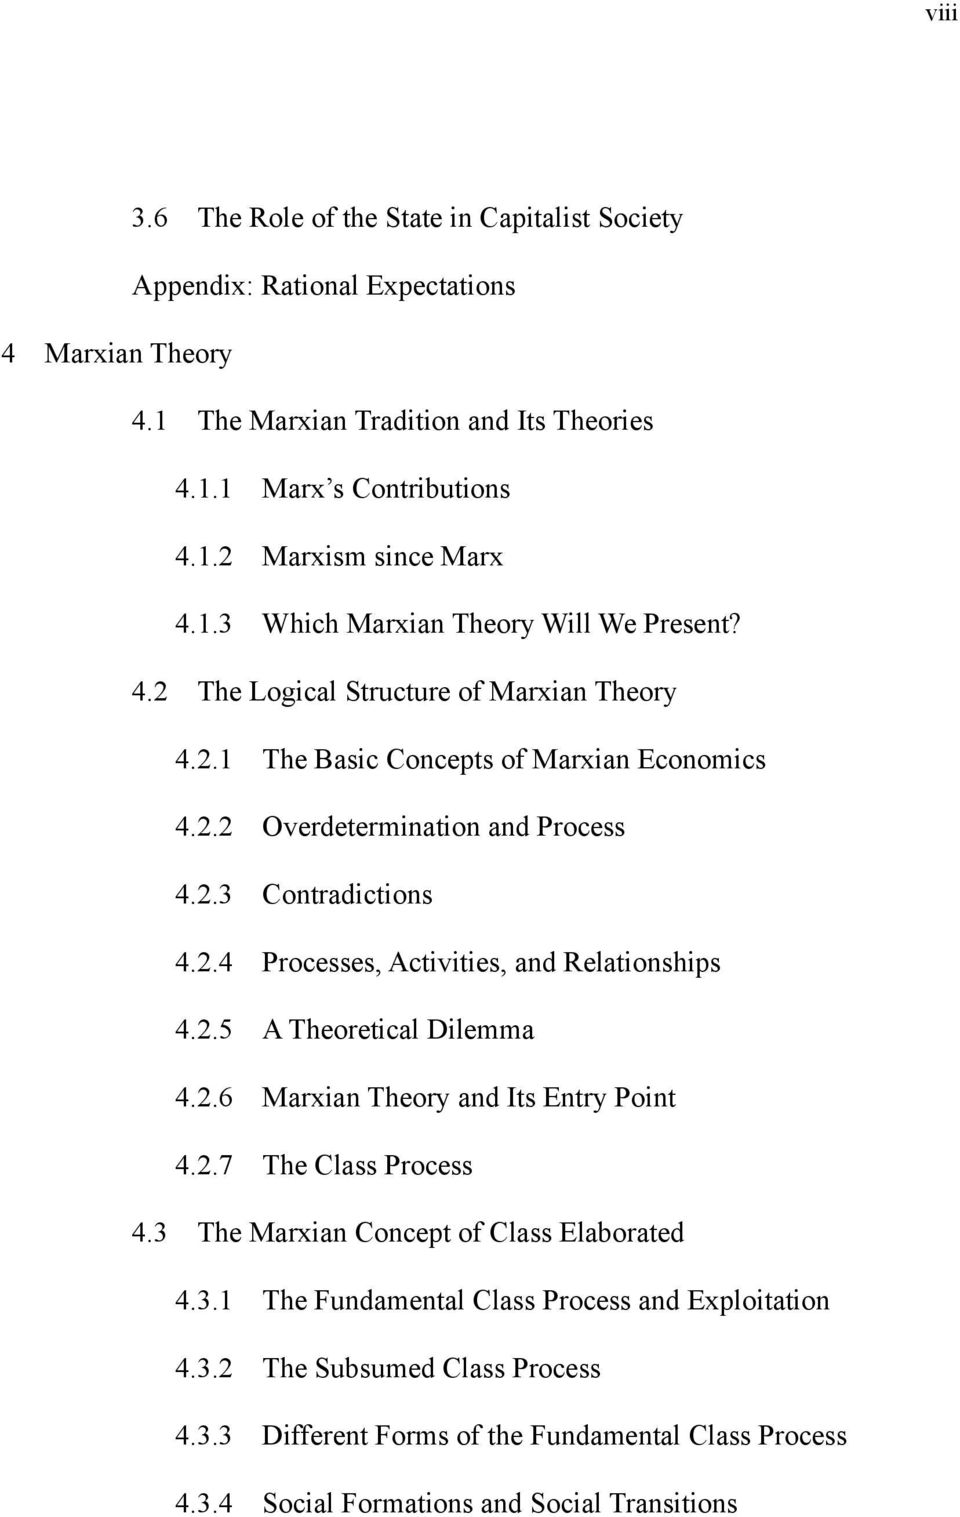 2.4 Processes, Activities, and Relationships 4.2.5 A Theoretical Dilemma 4.2.6 Marxian Theory and Its Entry Point 4.2.7 The Class Process 4.3